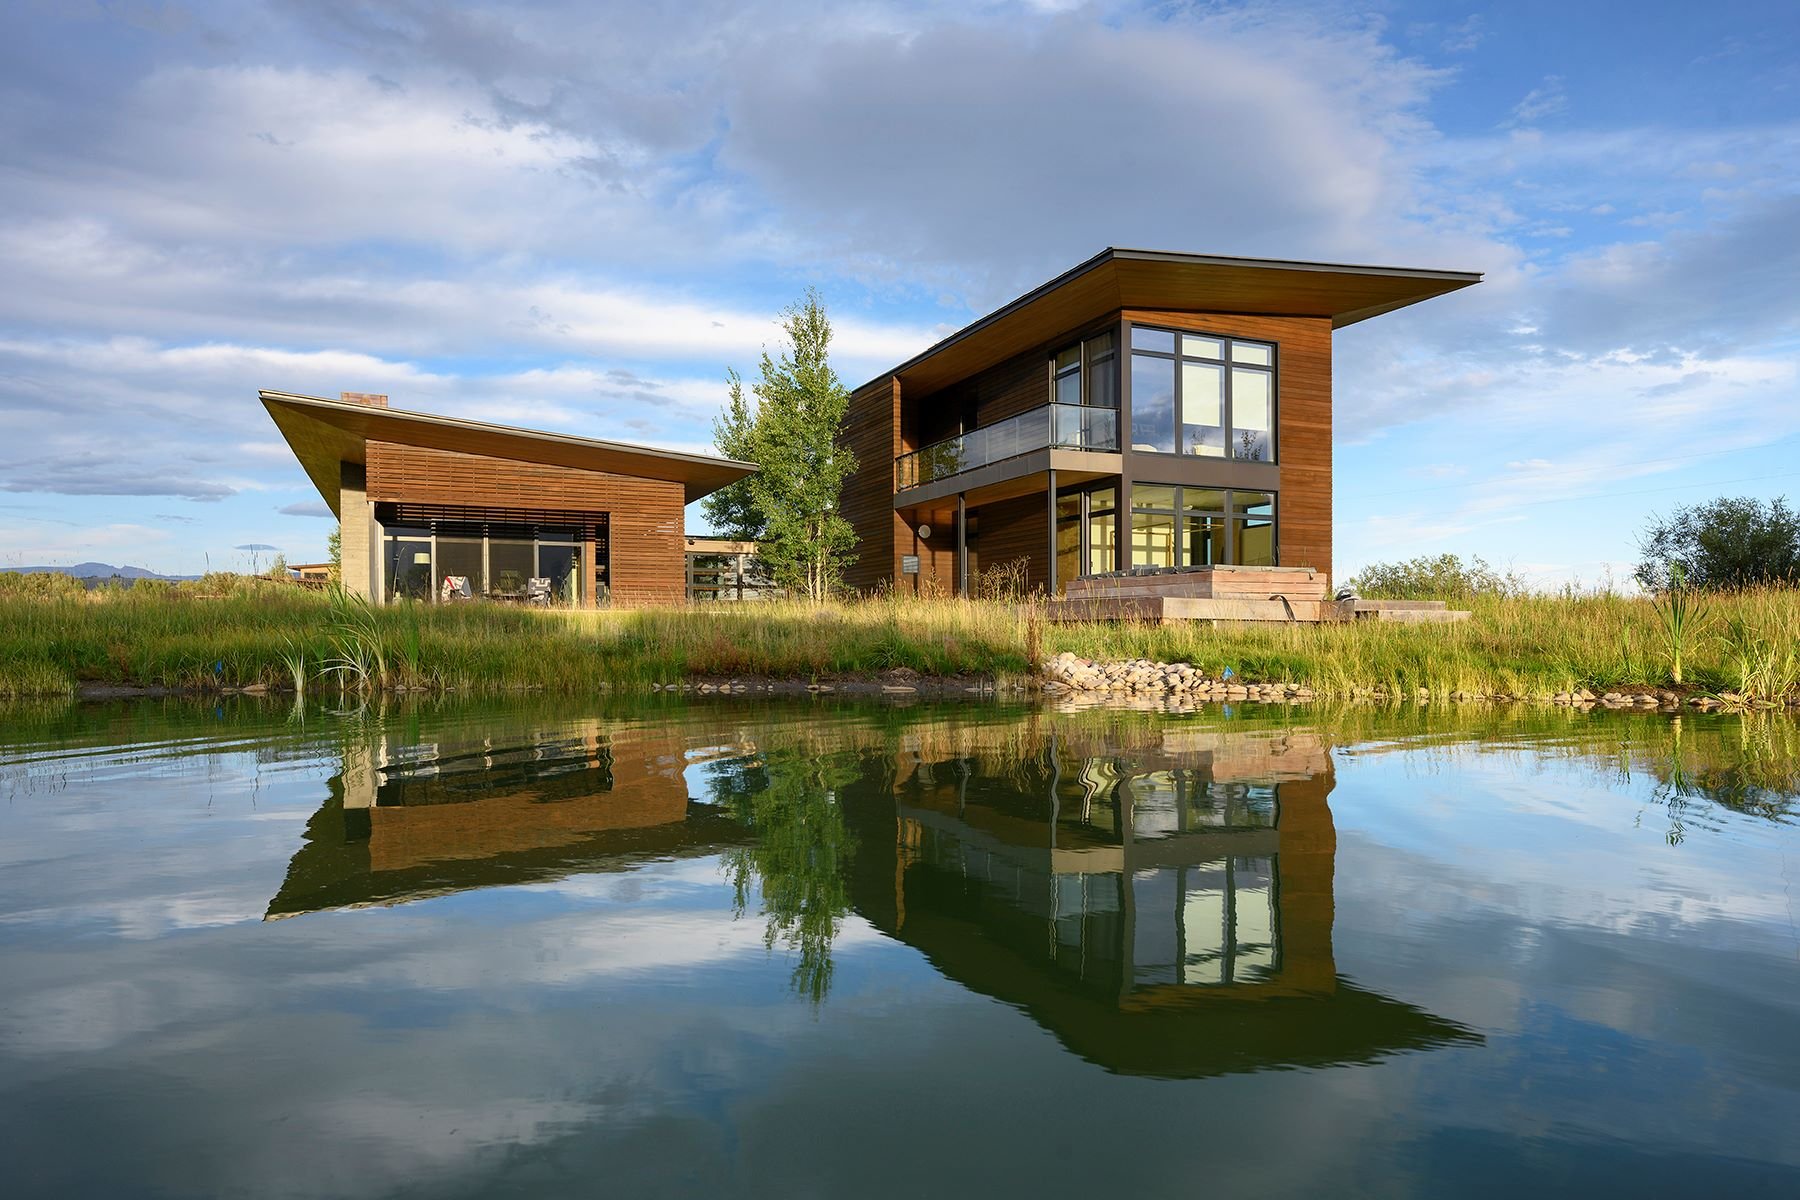 Single Family Homes for Sale at A Modern Home in the Western Vernacular 5050 Shoshone Dr Wilson, Wyoming 83014 United States